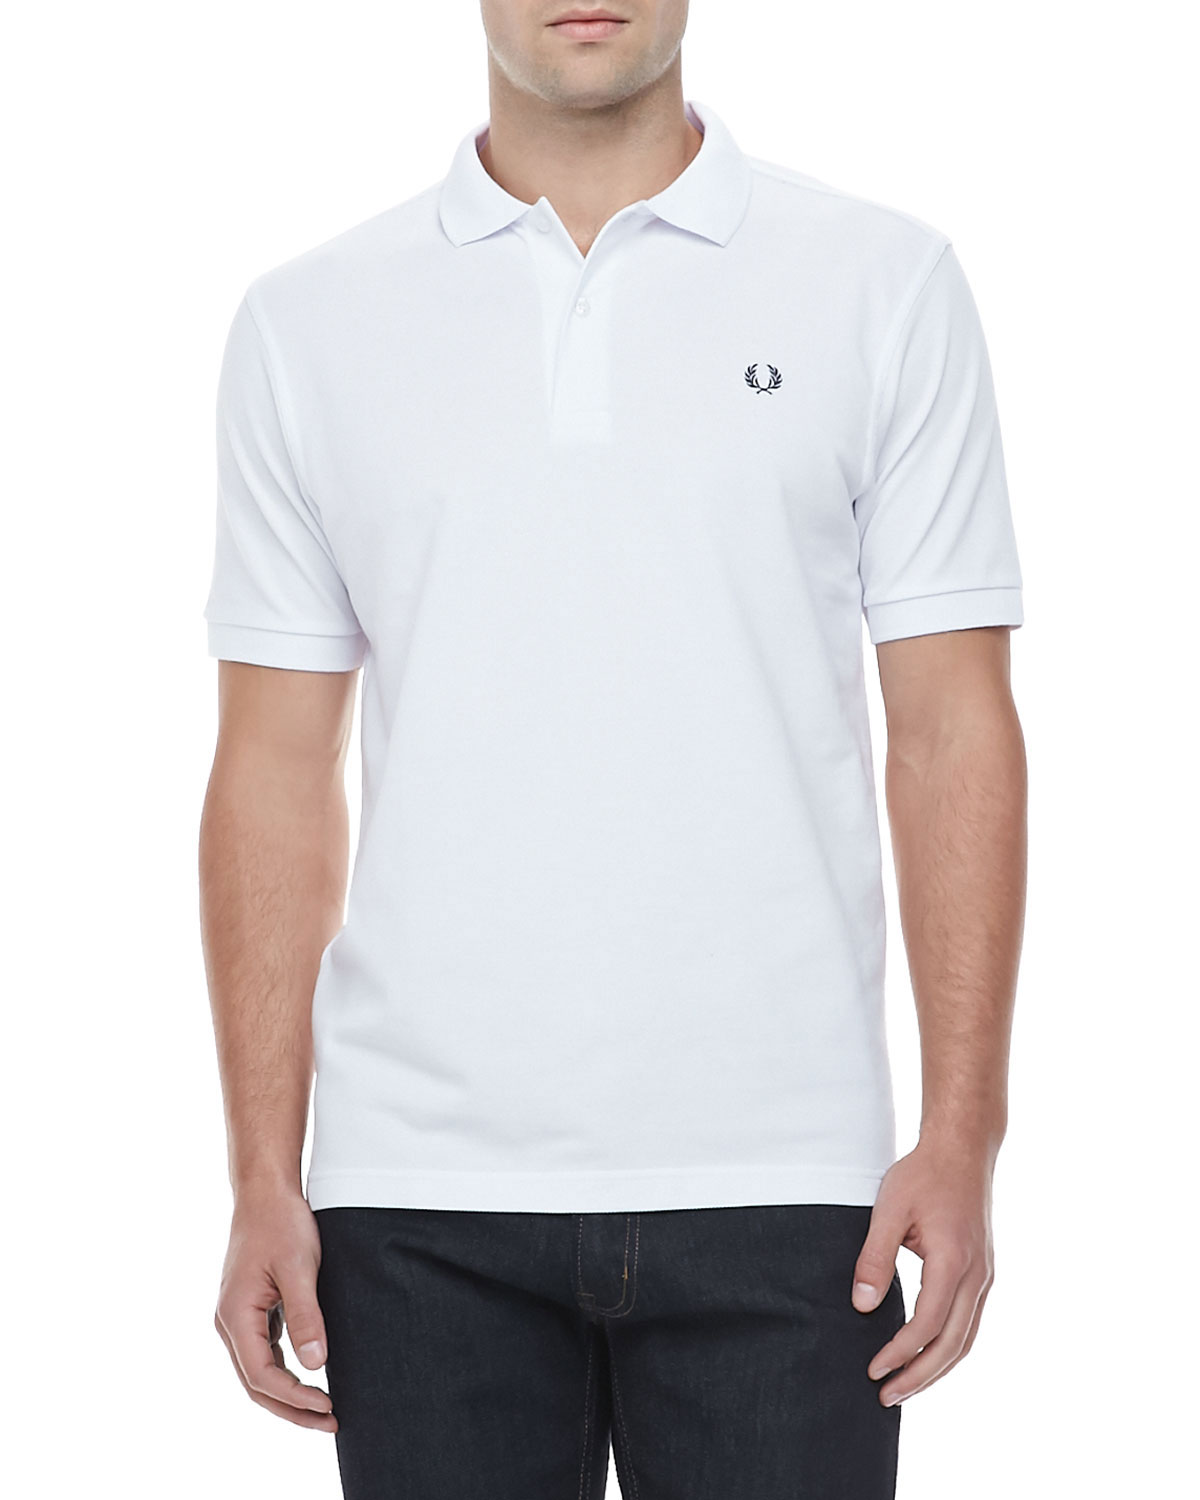 Mens Solid Short Sleeve Polo Shirt, White   Fred Perry   White (XXL)